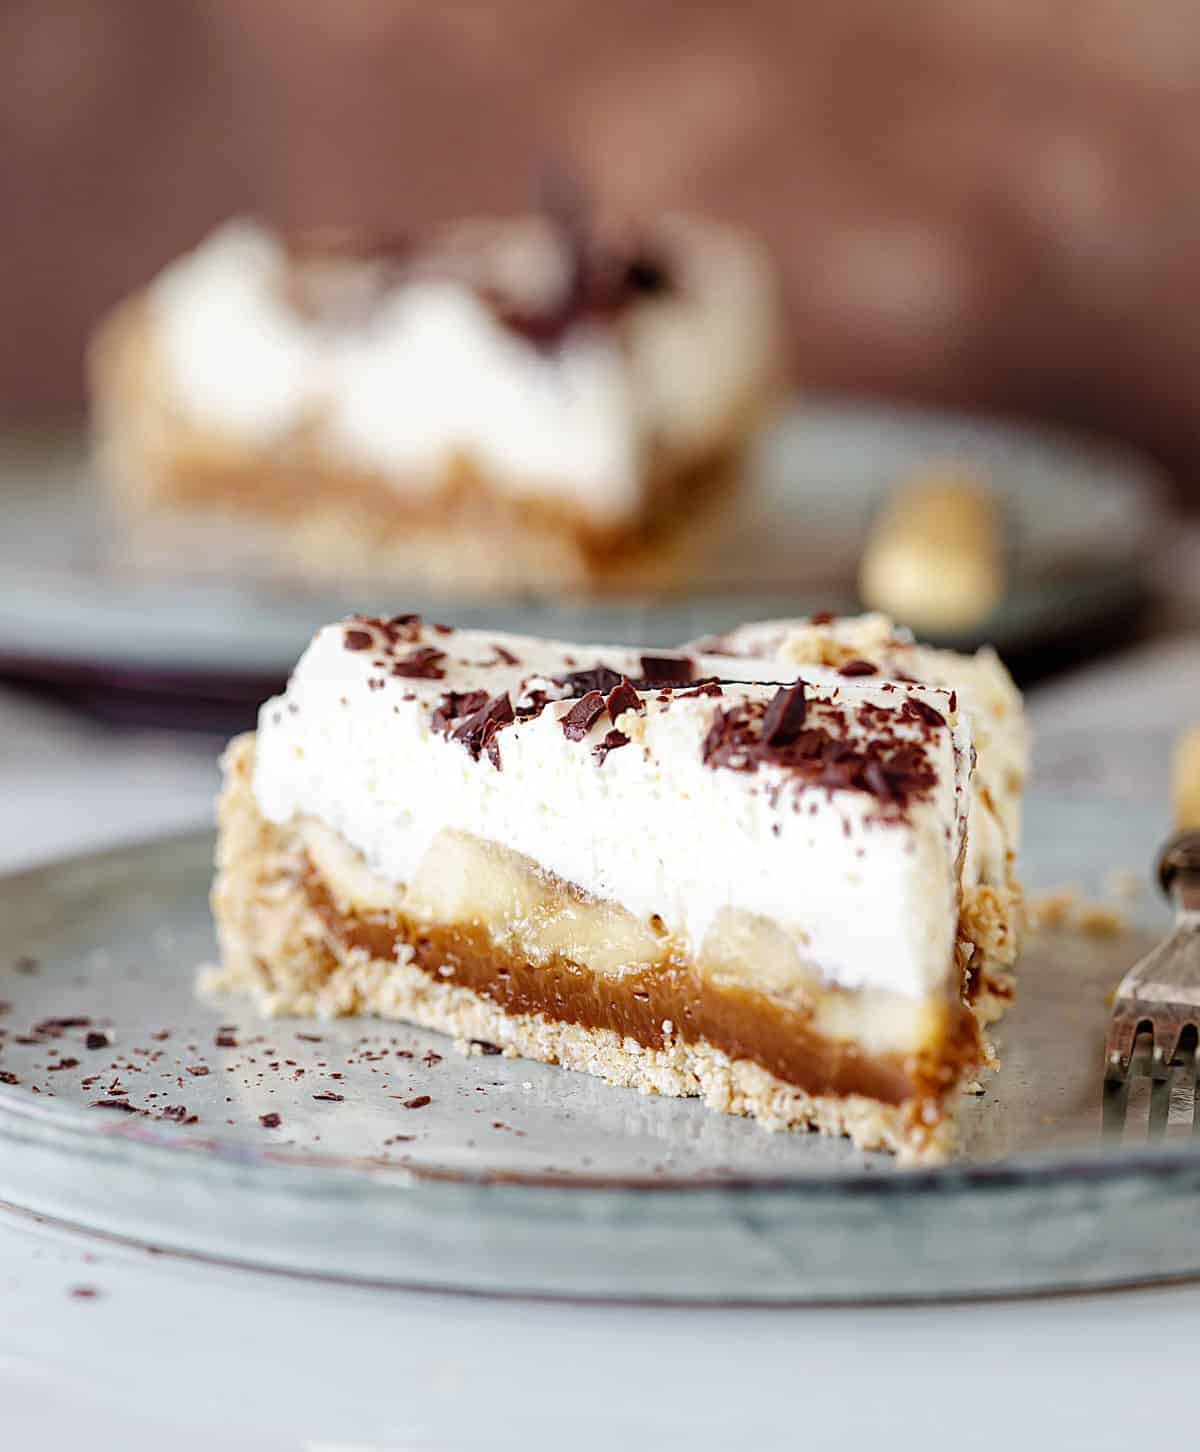 Close up slice of banoffee pie on grey plate, another serving in background